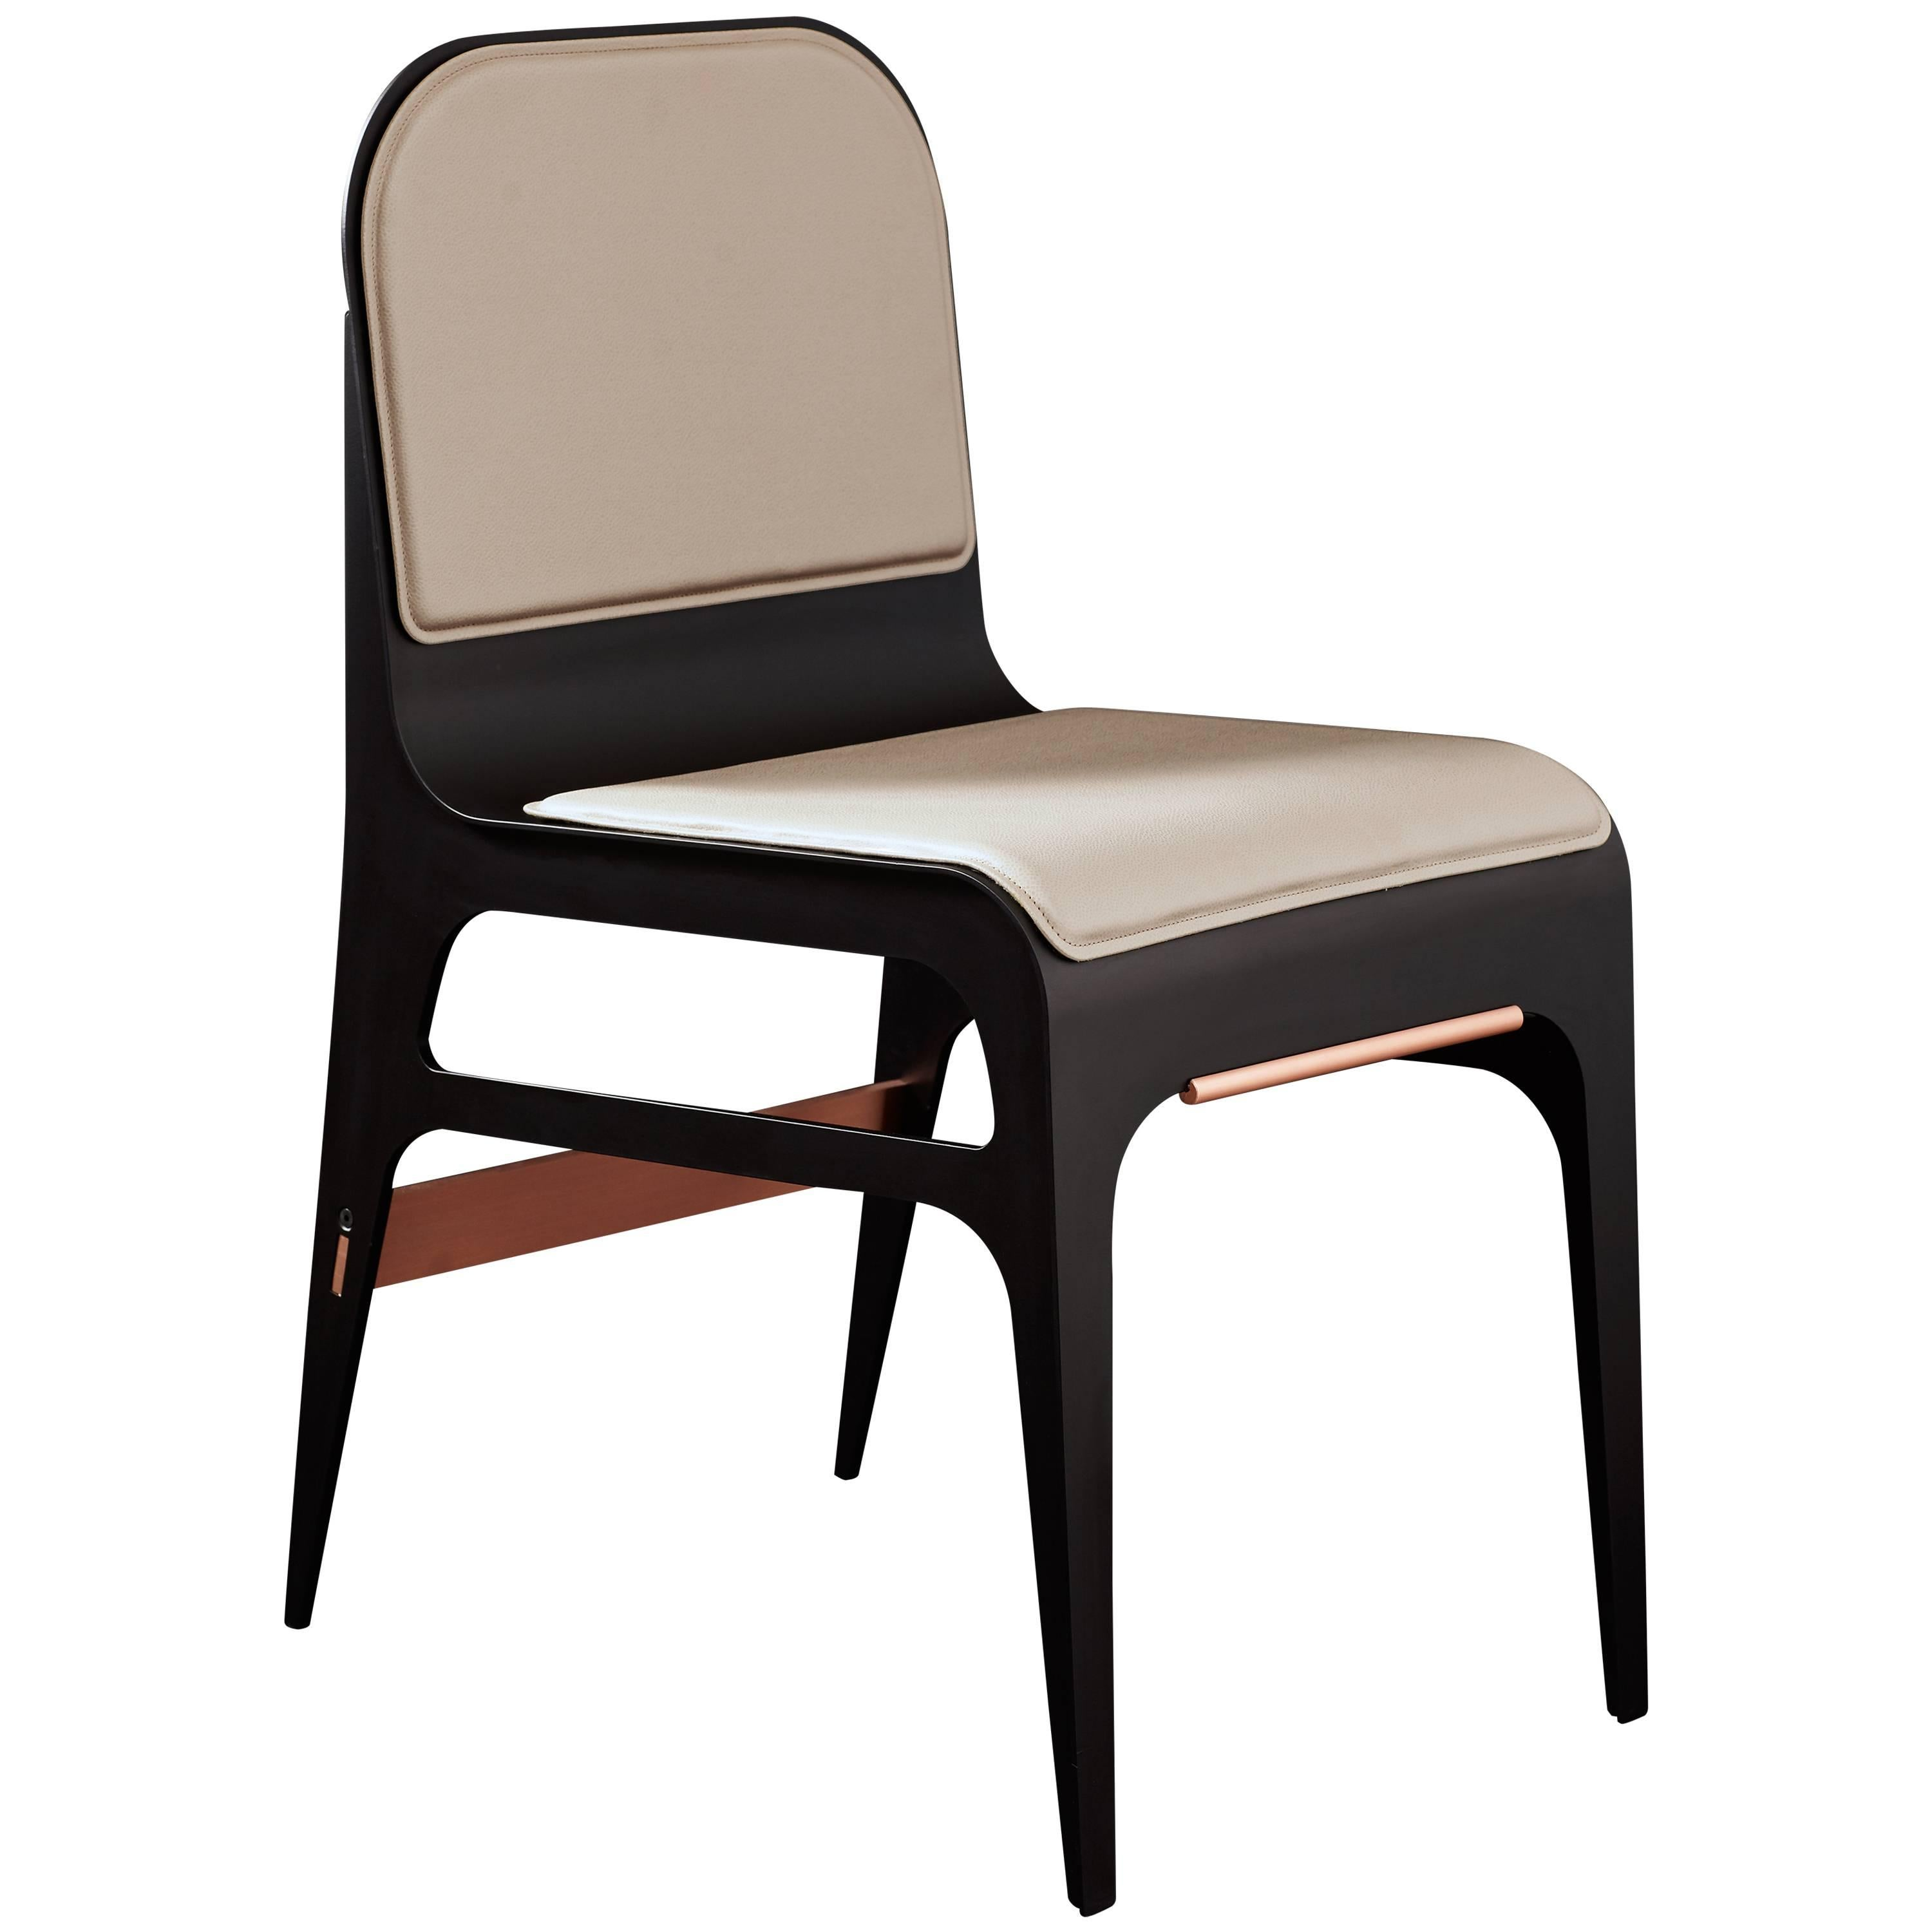 Bardot Side or Dining Chair in Black Steel and Satin Copper with French Leather